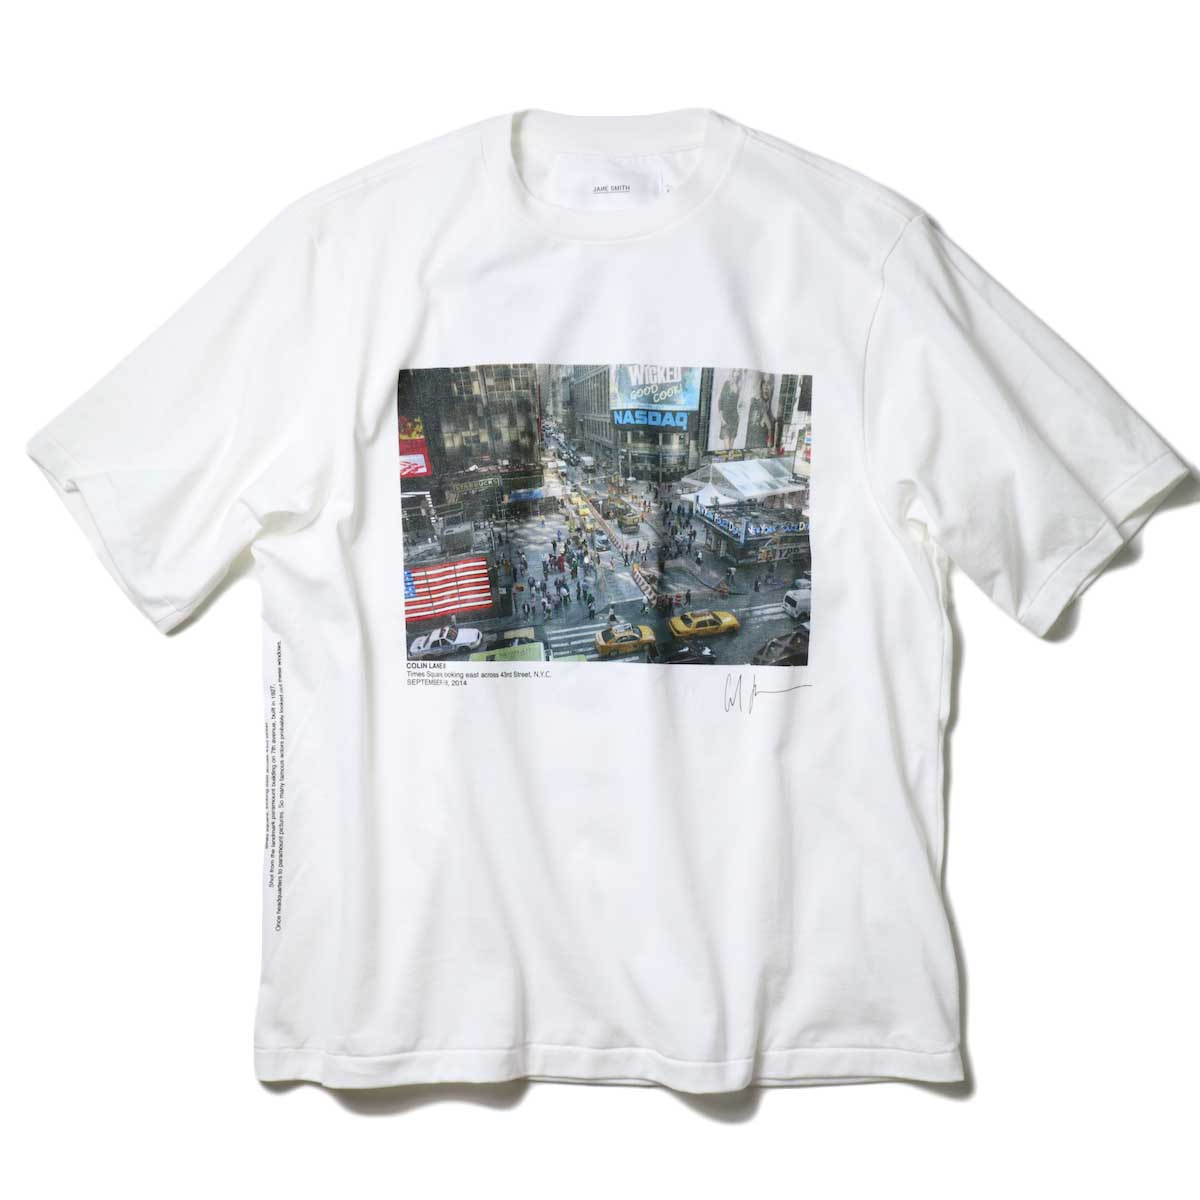 JANE SMITH / TIMES SQUARE S/S T-SHIRT